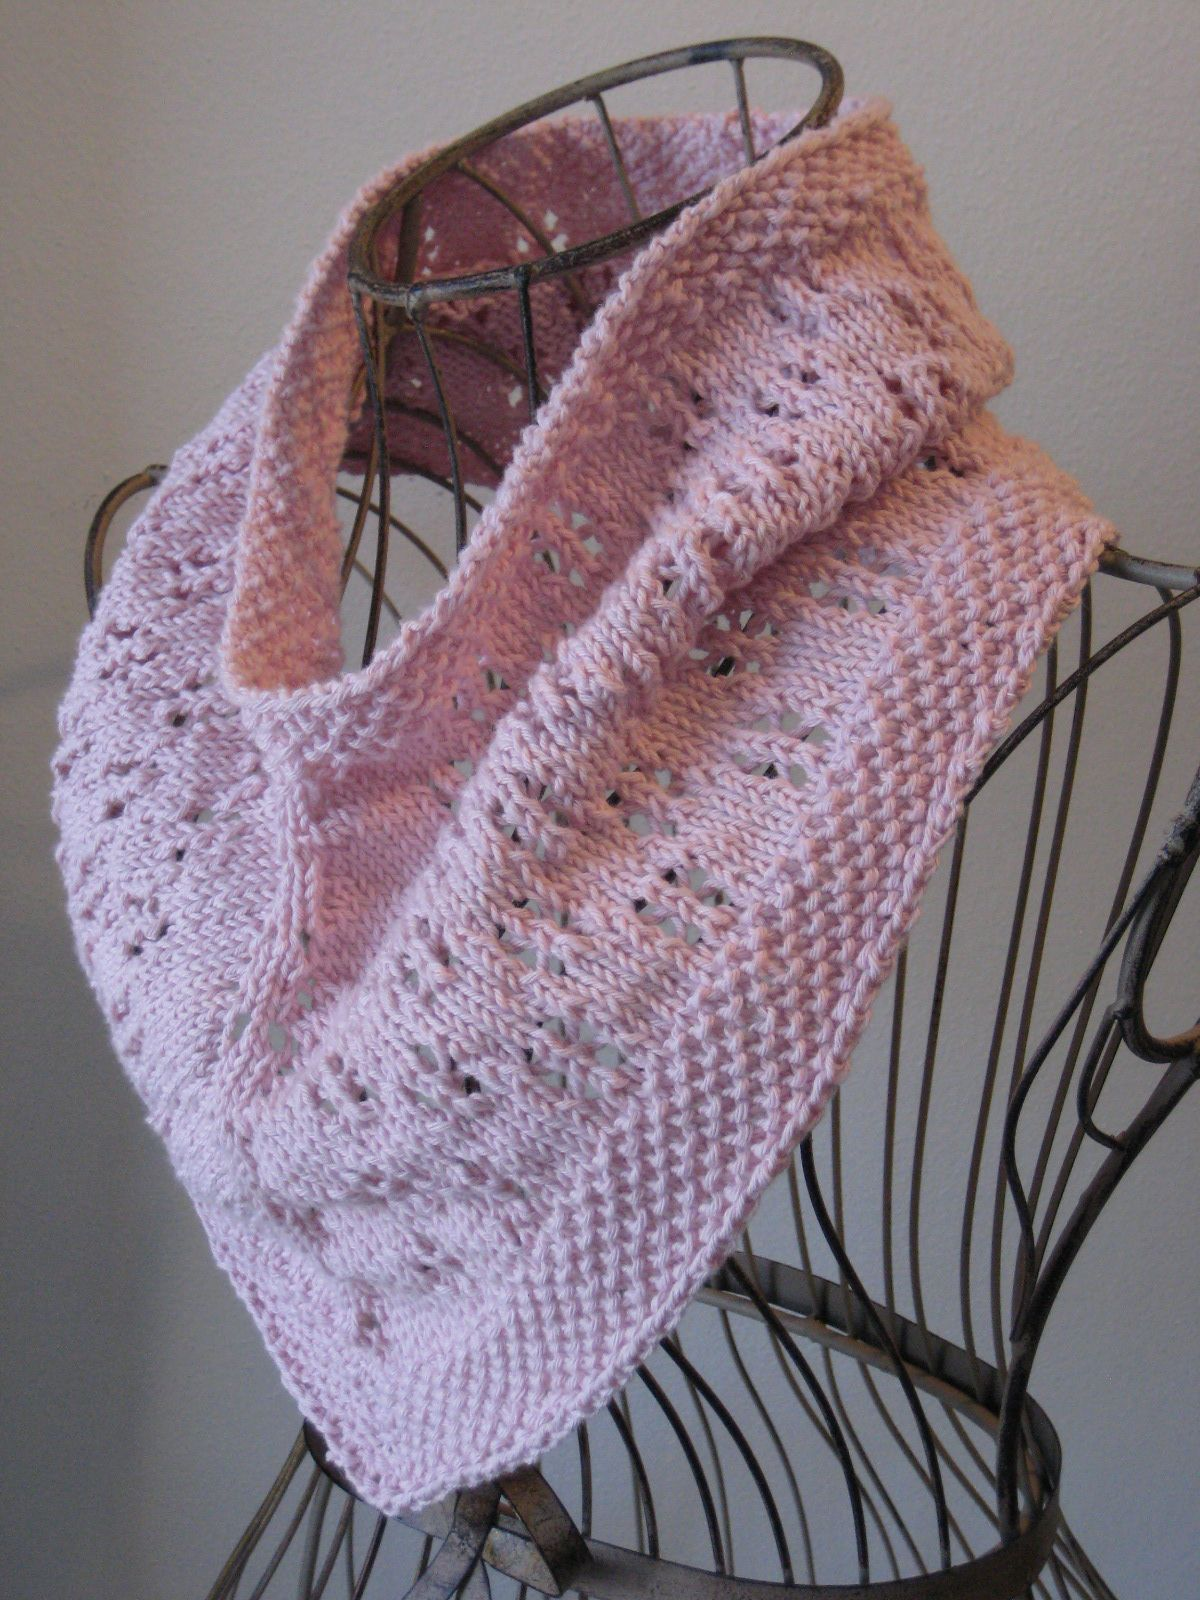 Free Knitting Pattern - Cowls and Neck Warmers: Daisy Chain Cowl ...